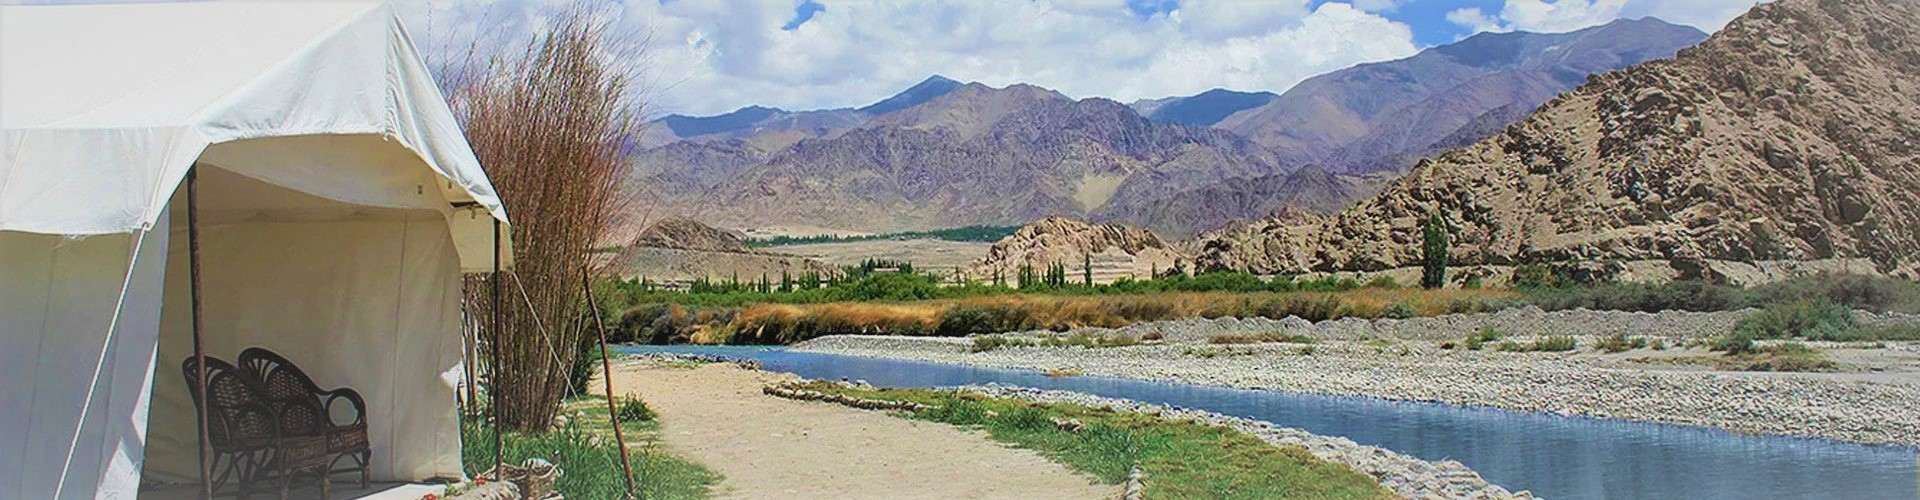 The Indus River Camp